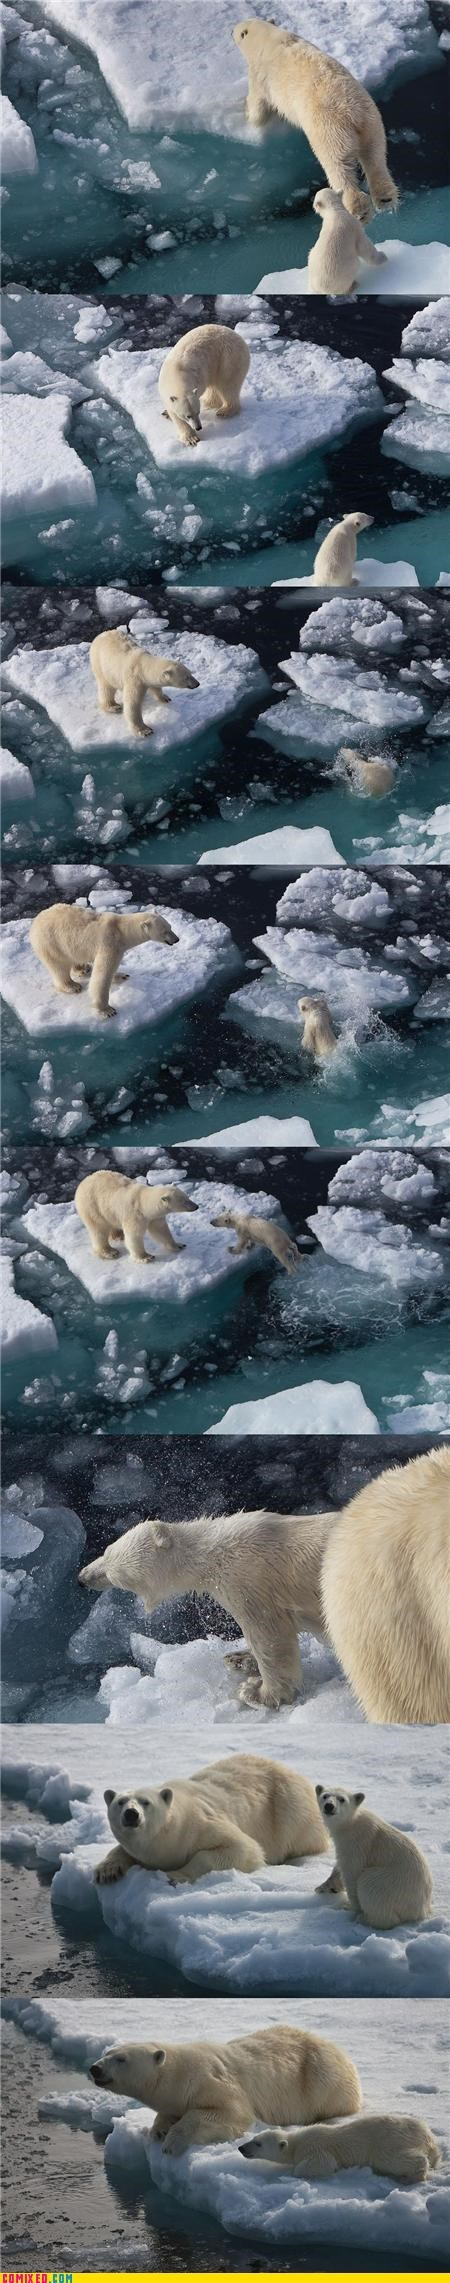 animals,global warming,polar bear,social good saturday,swim